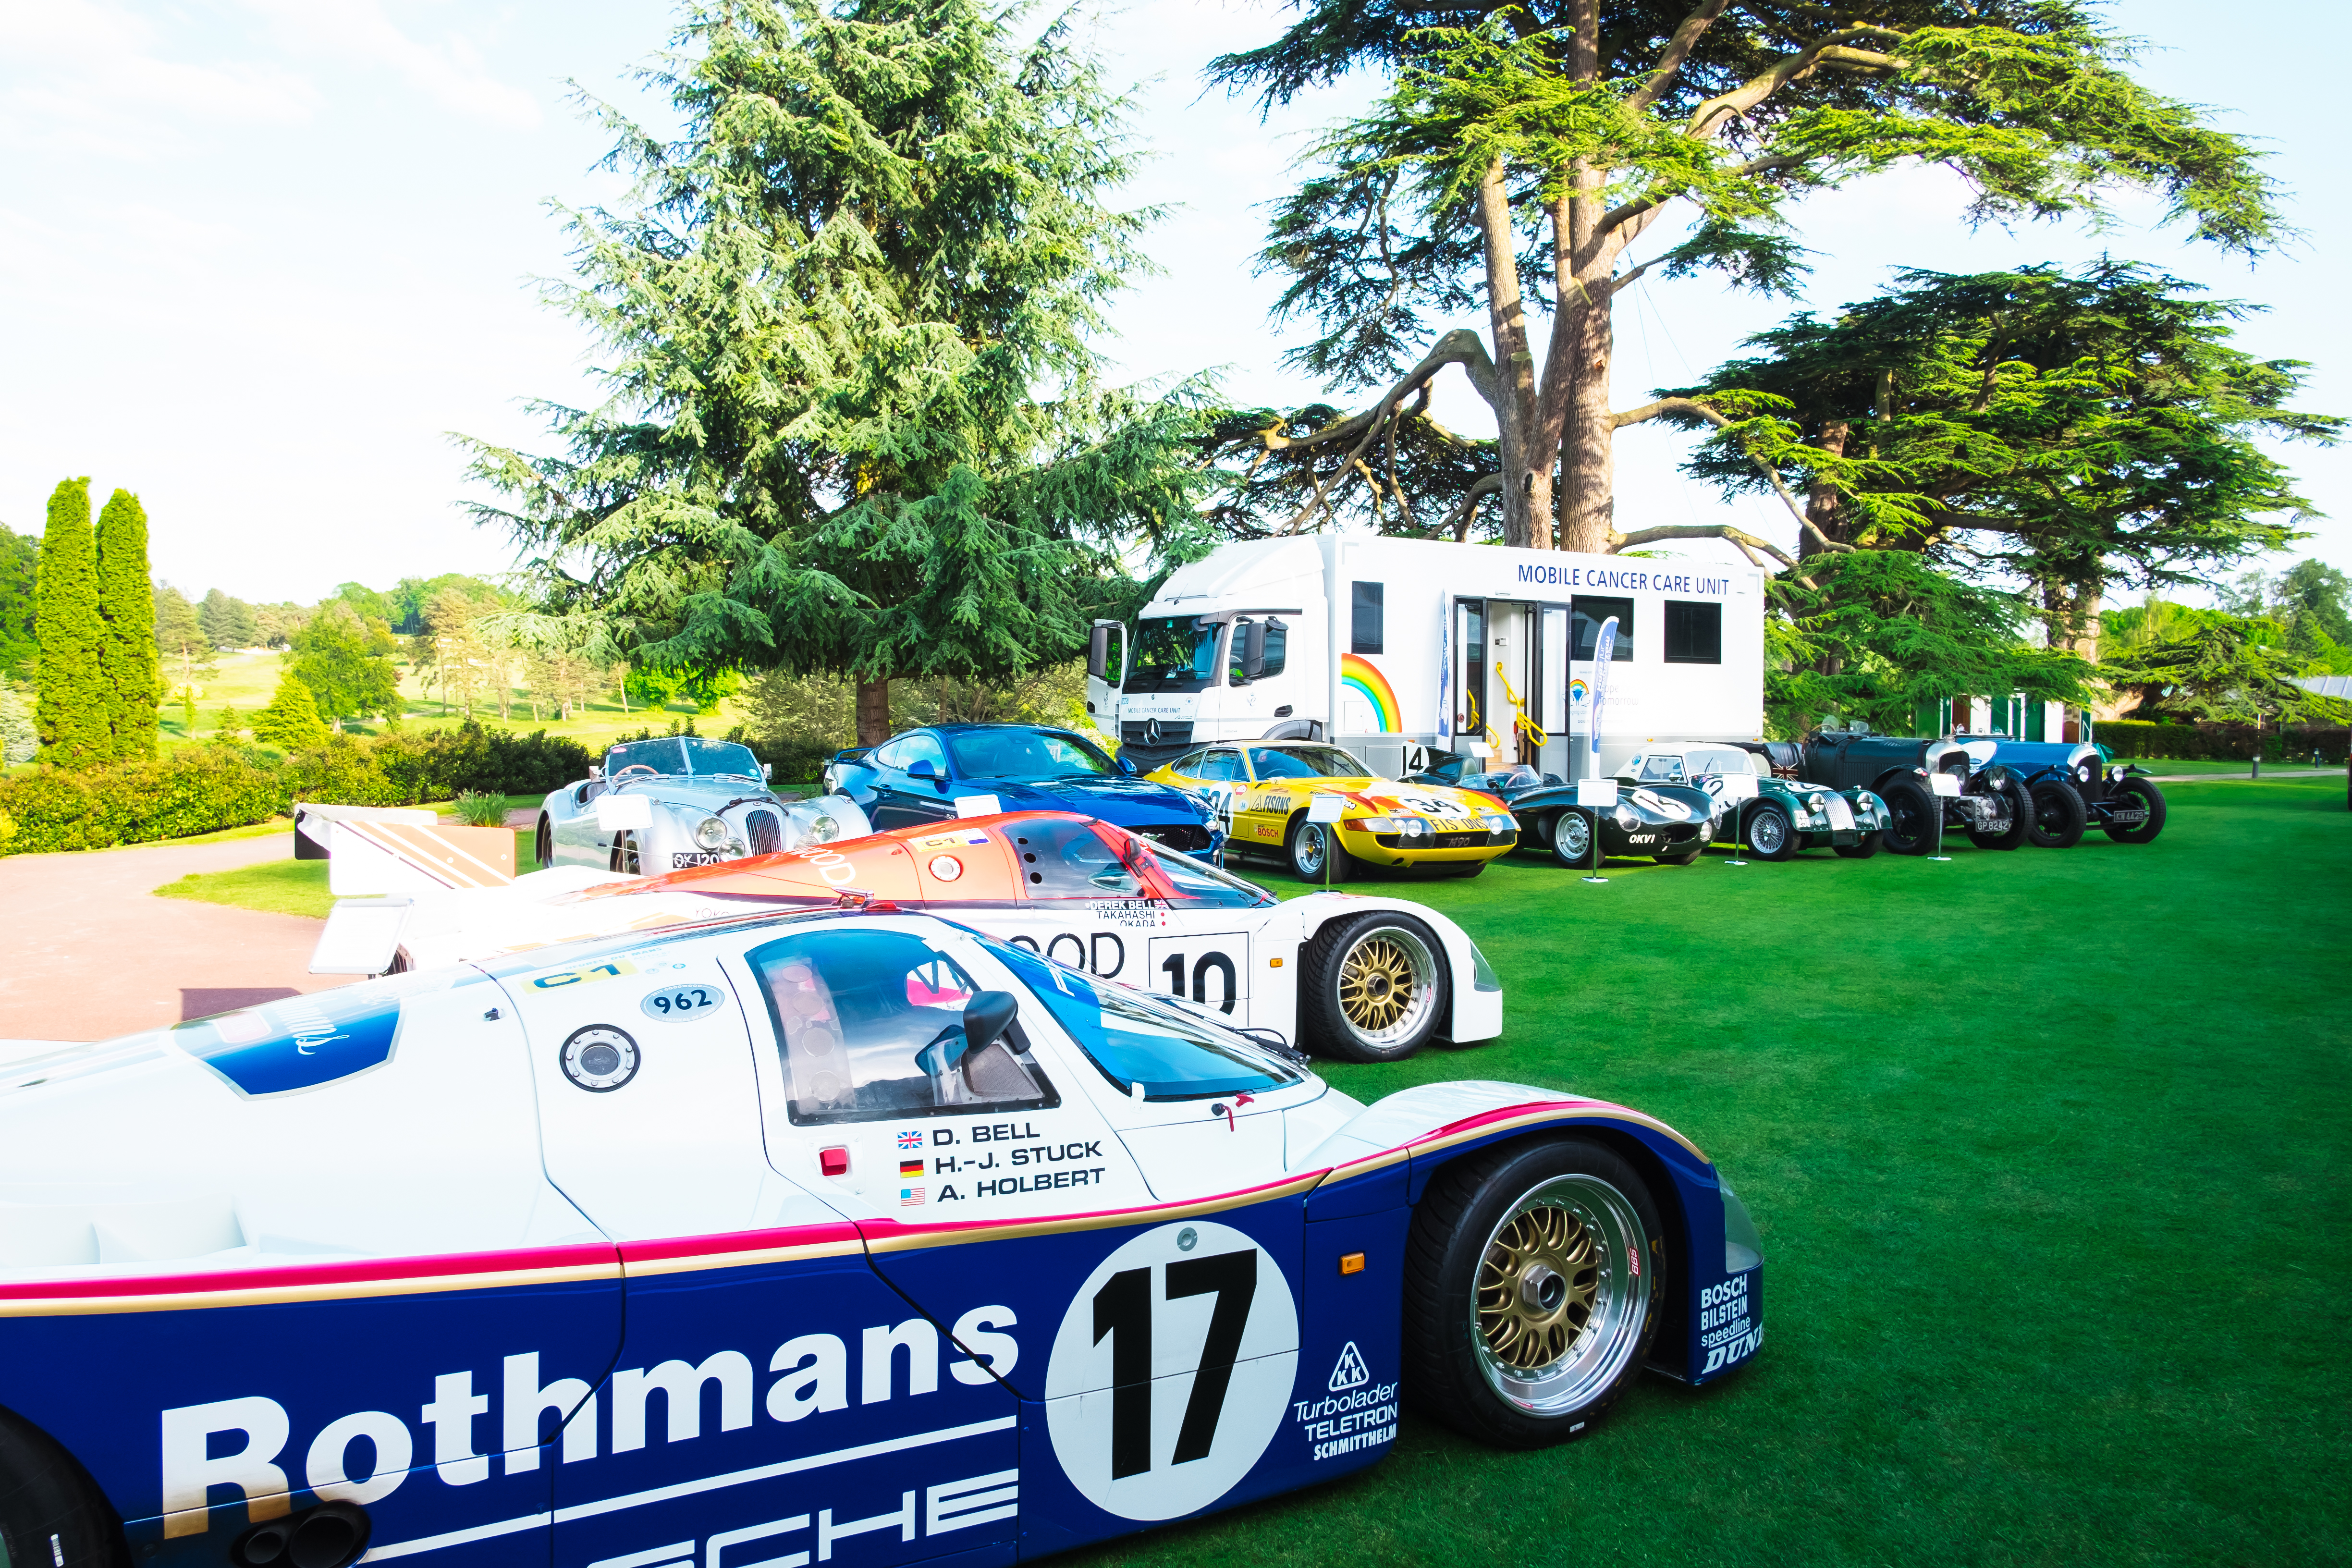 Display cars and Mobile Cancer Care Unit on display at Legends of Le Mans event